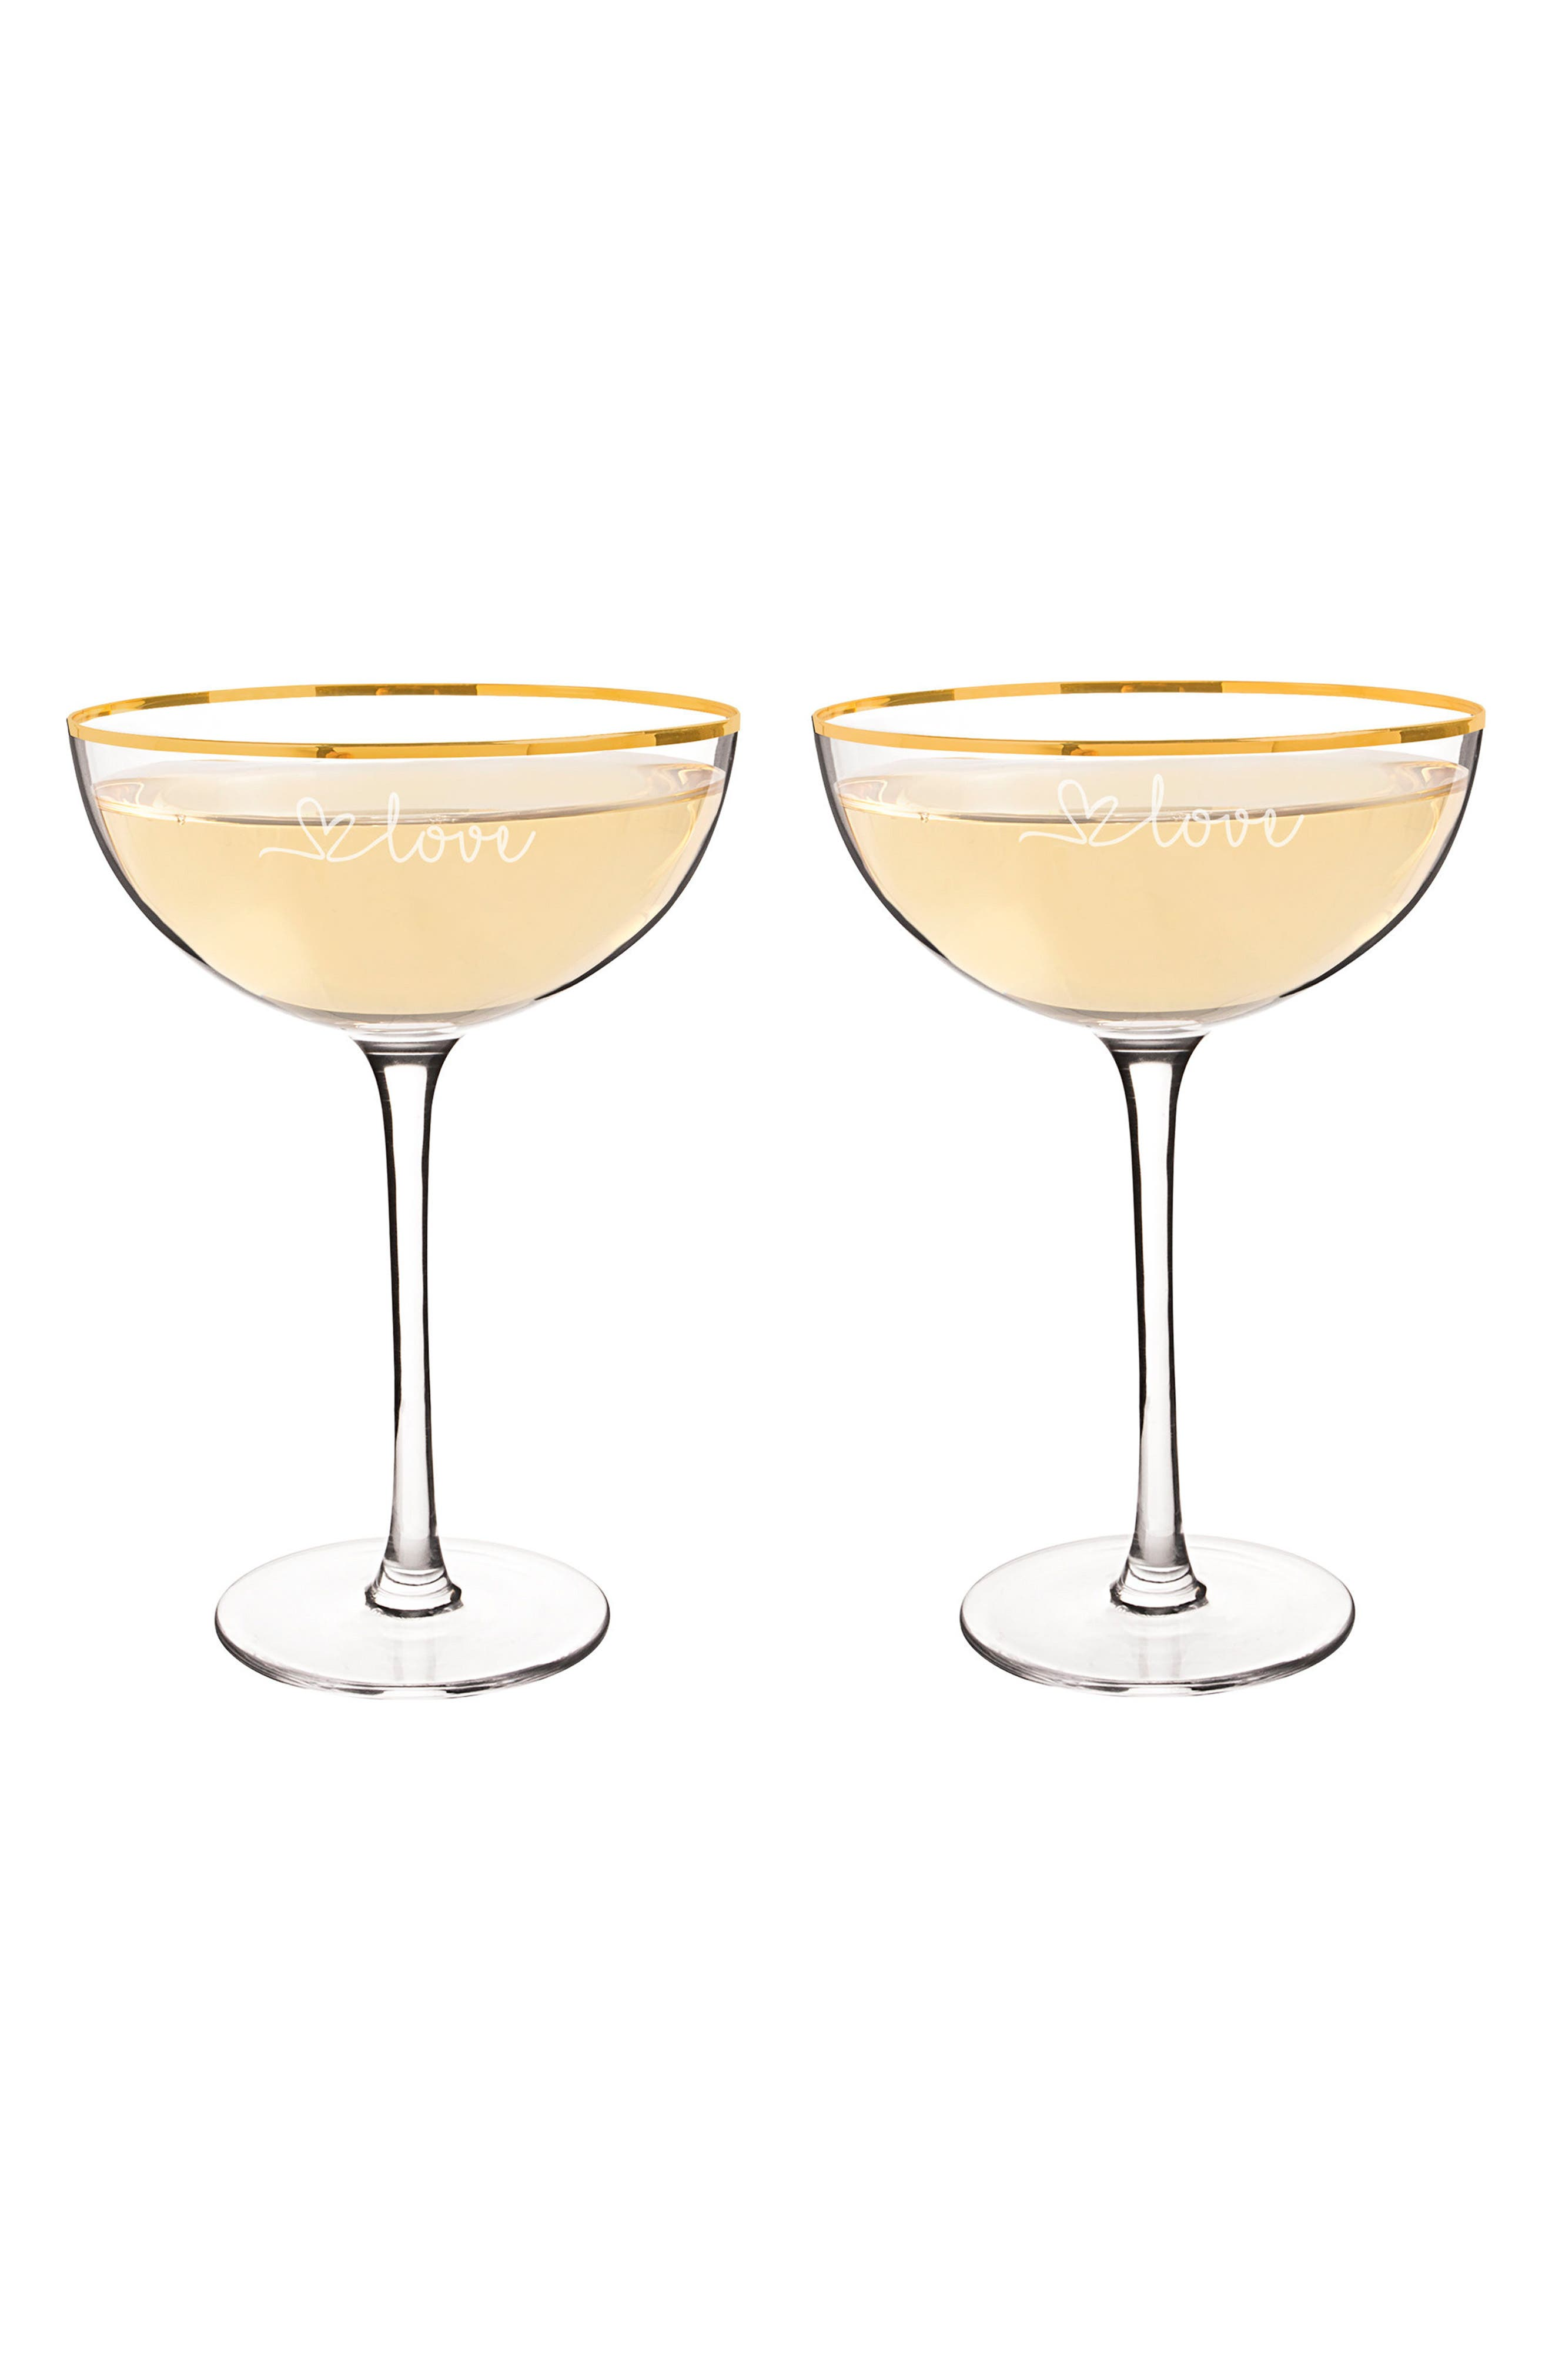 Love Set of 2 Champagne Coupe Toasting Glasses,                             Alternate thumbnail 2, color,                             710